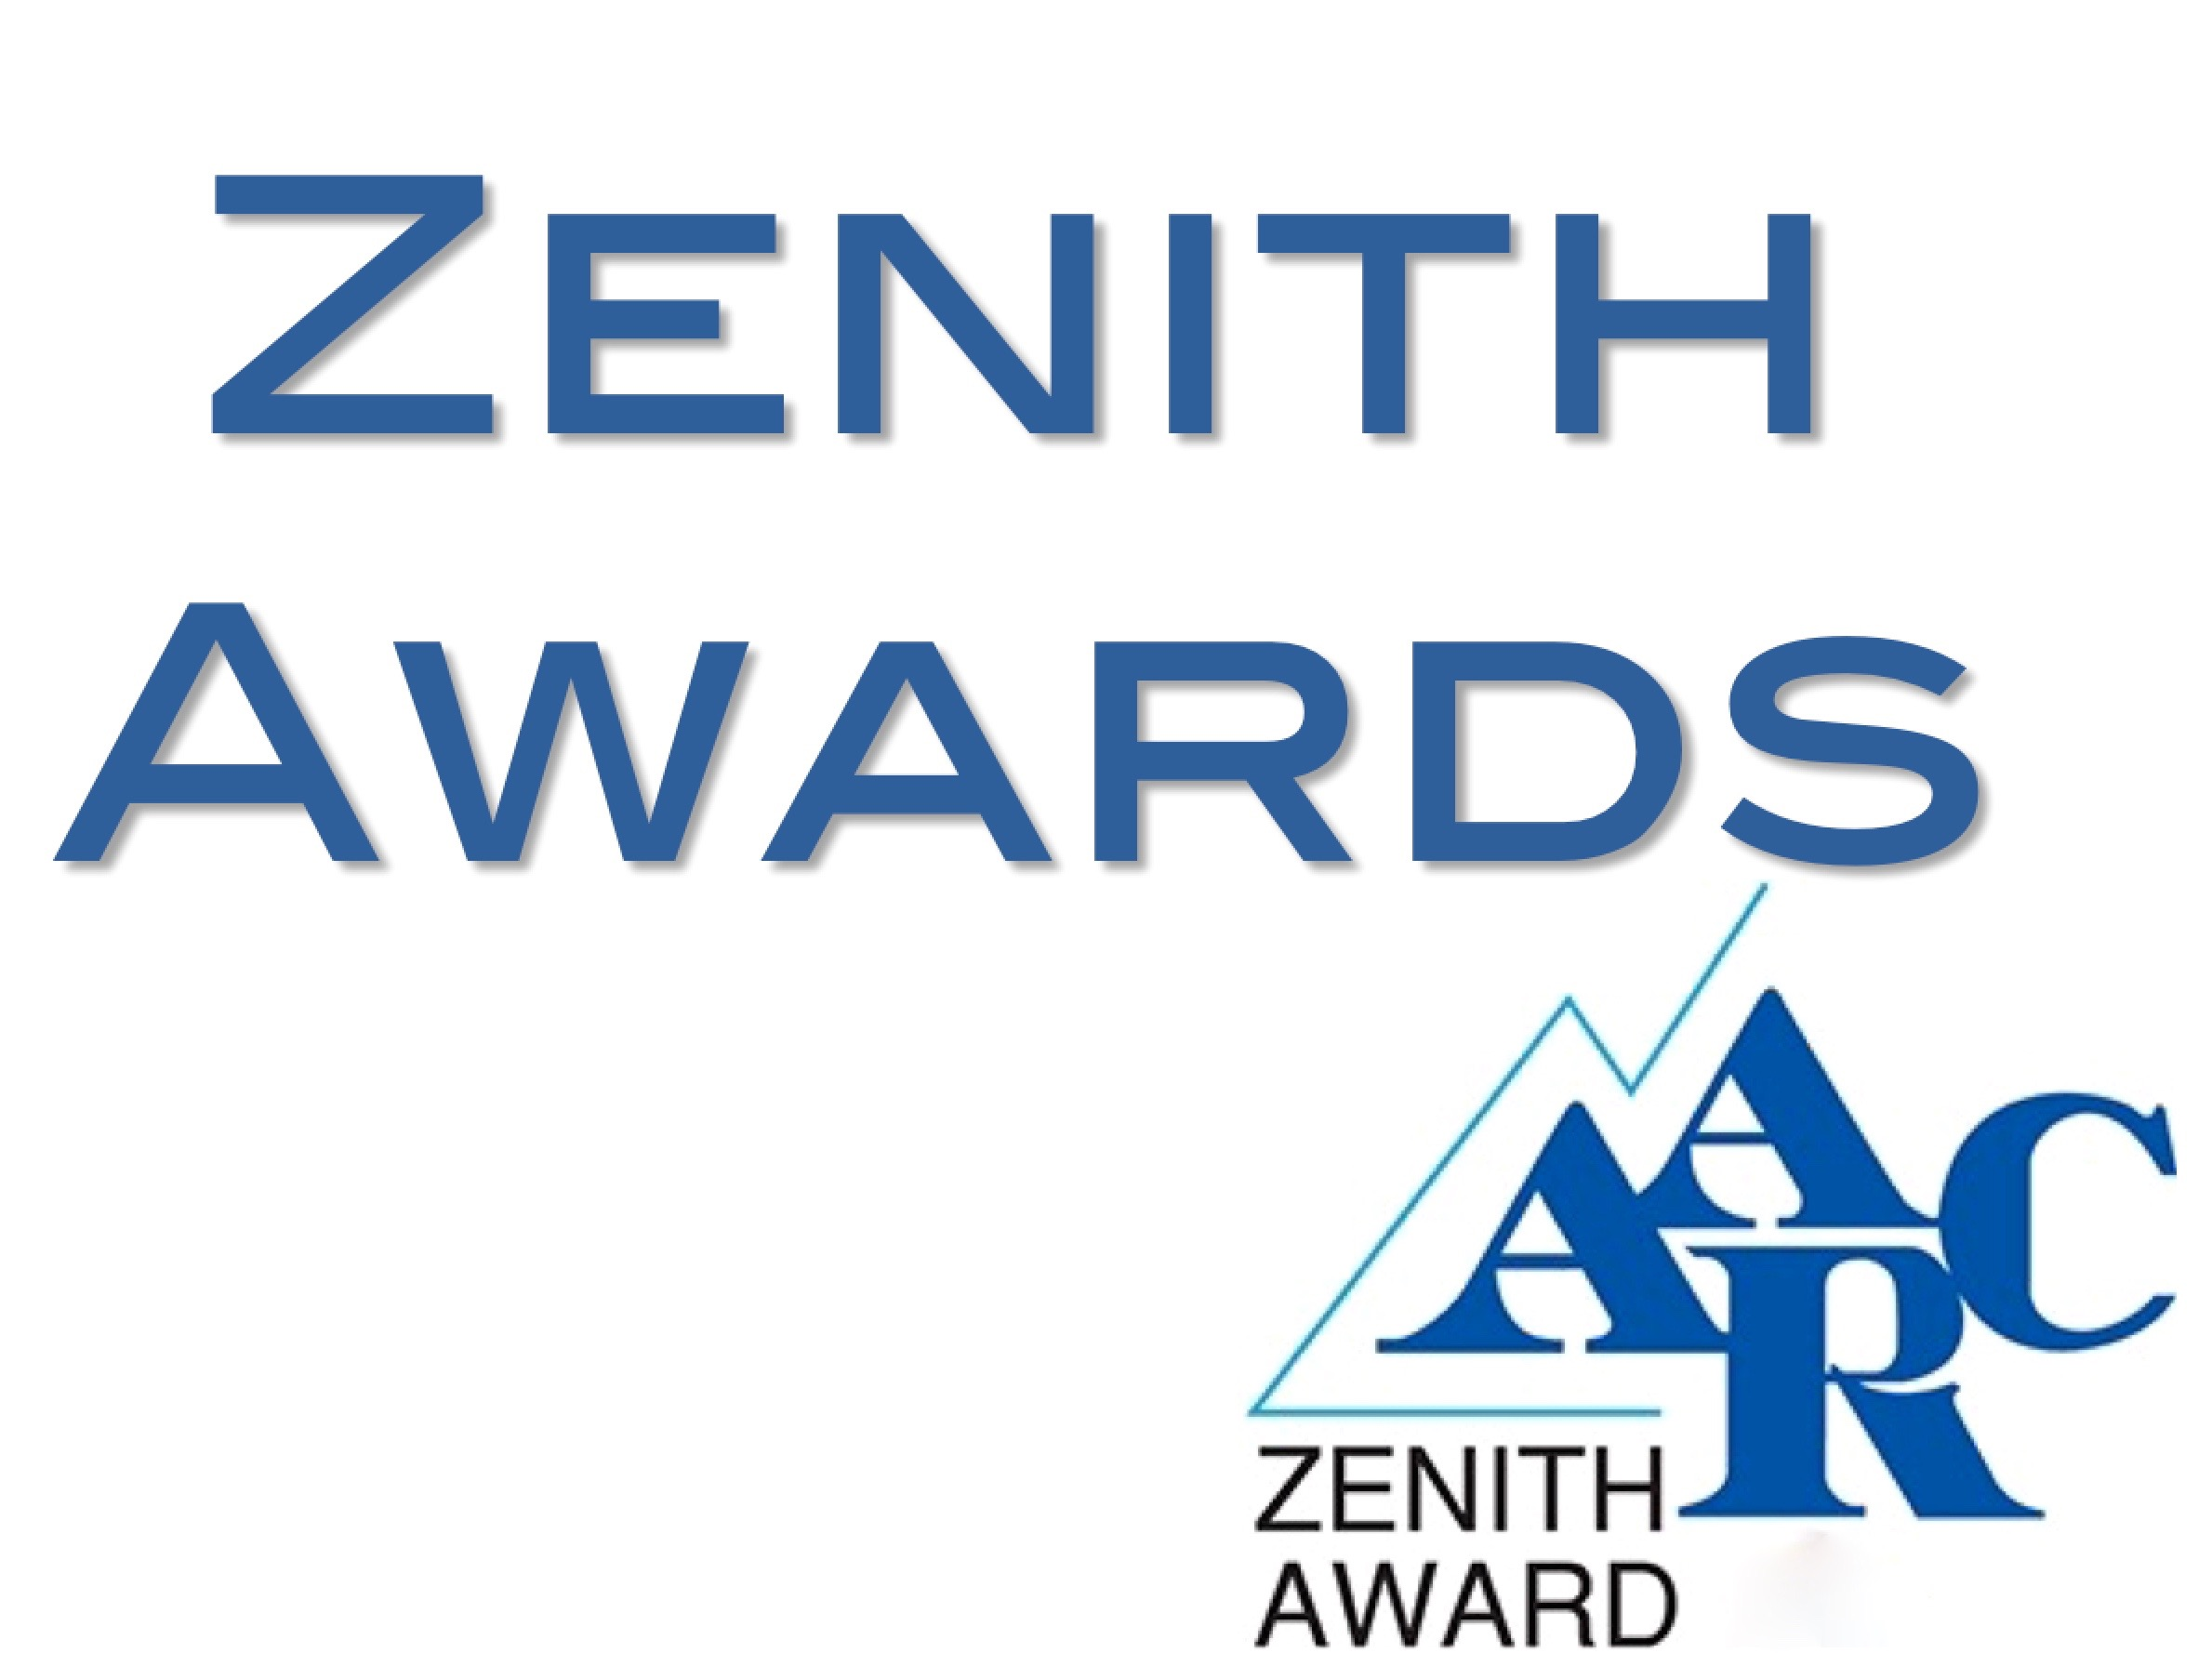 Zenith Awards